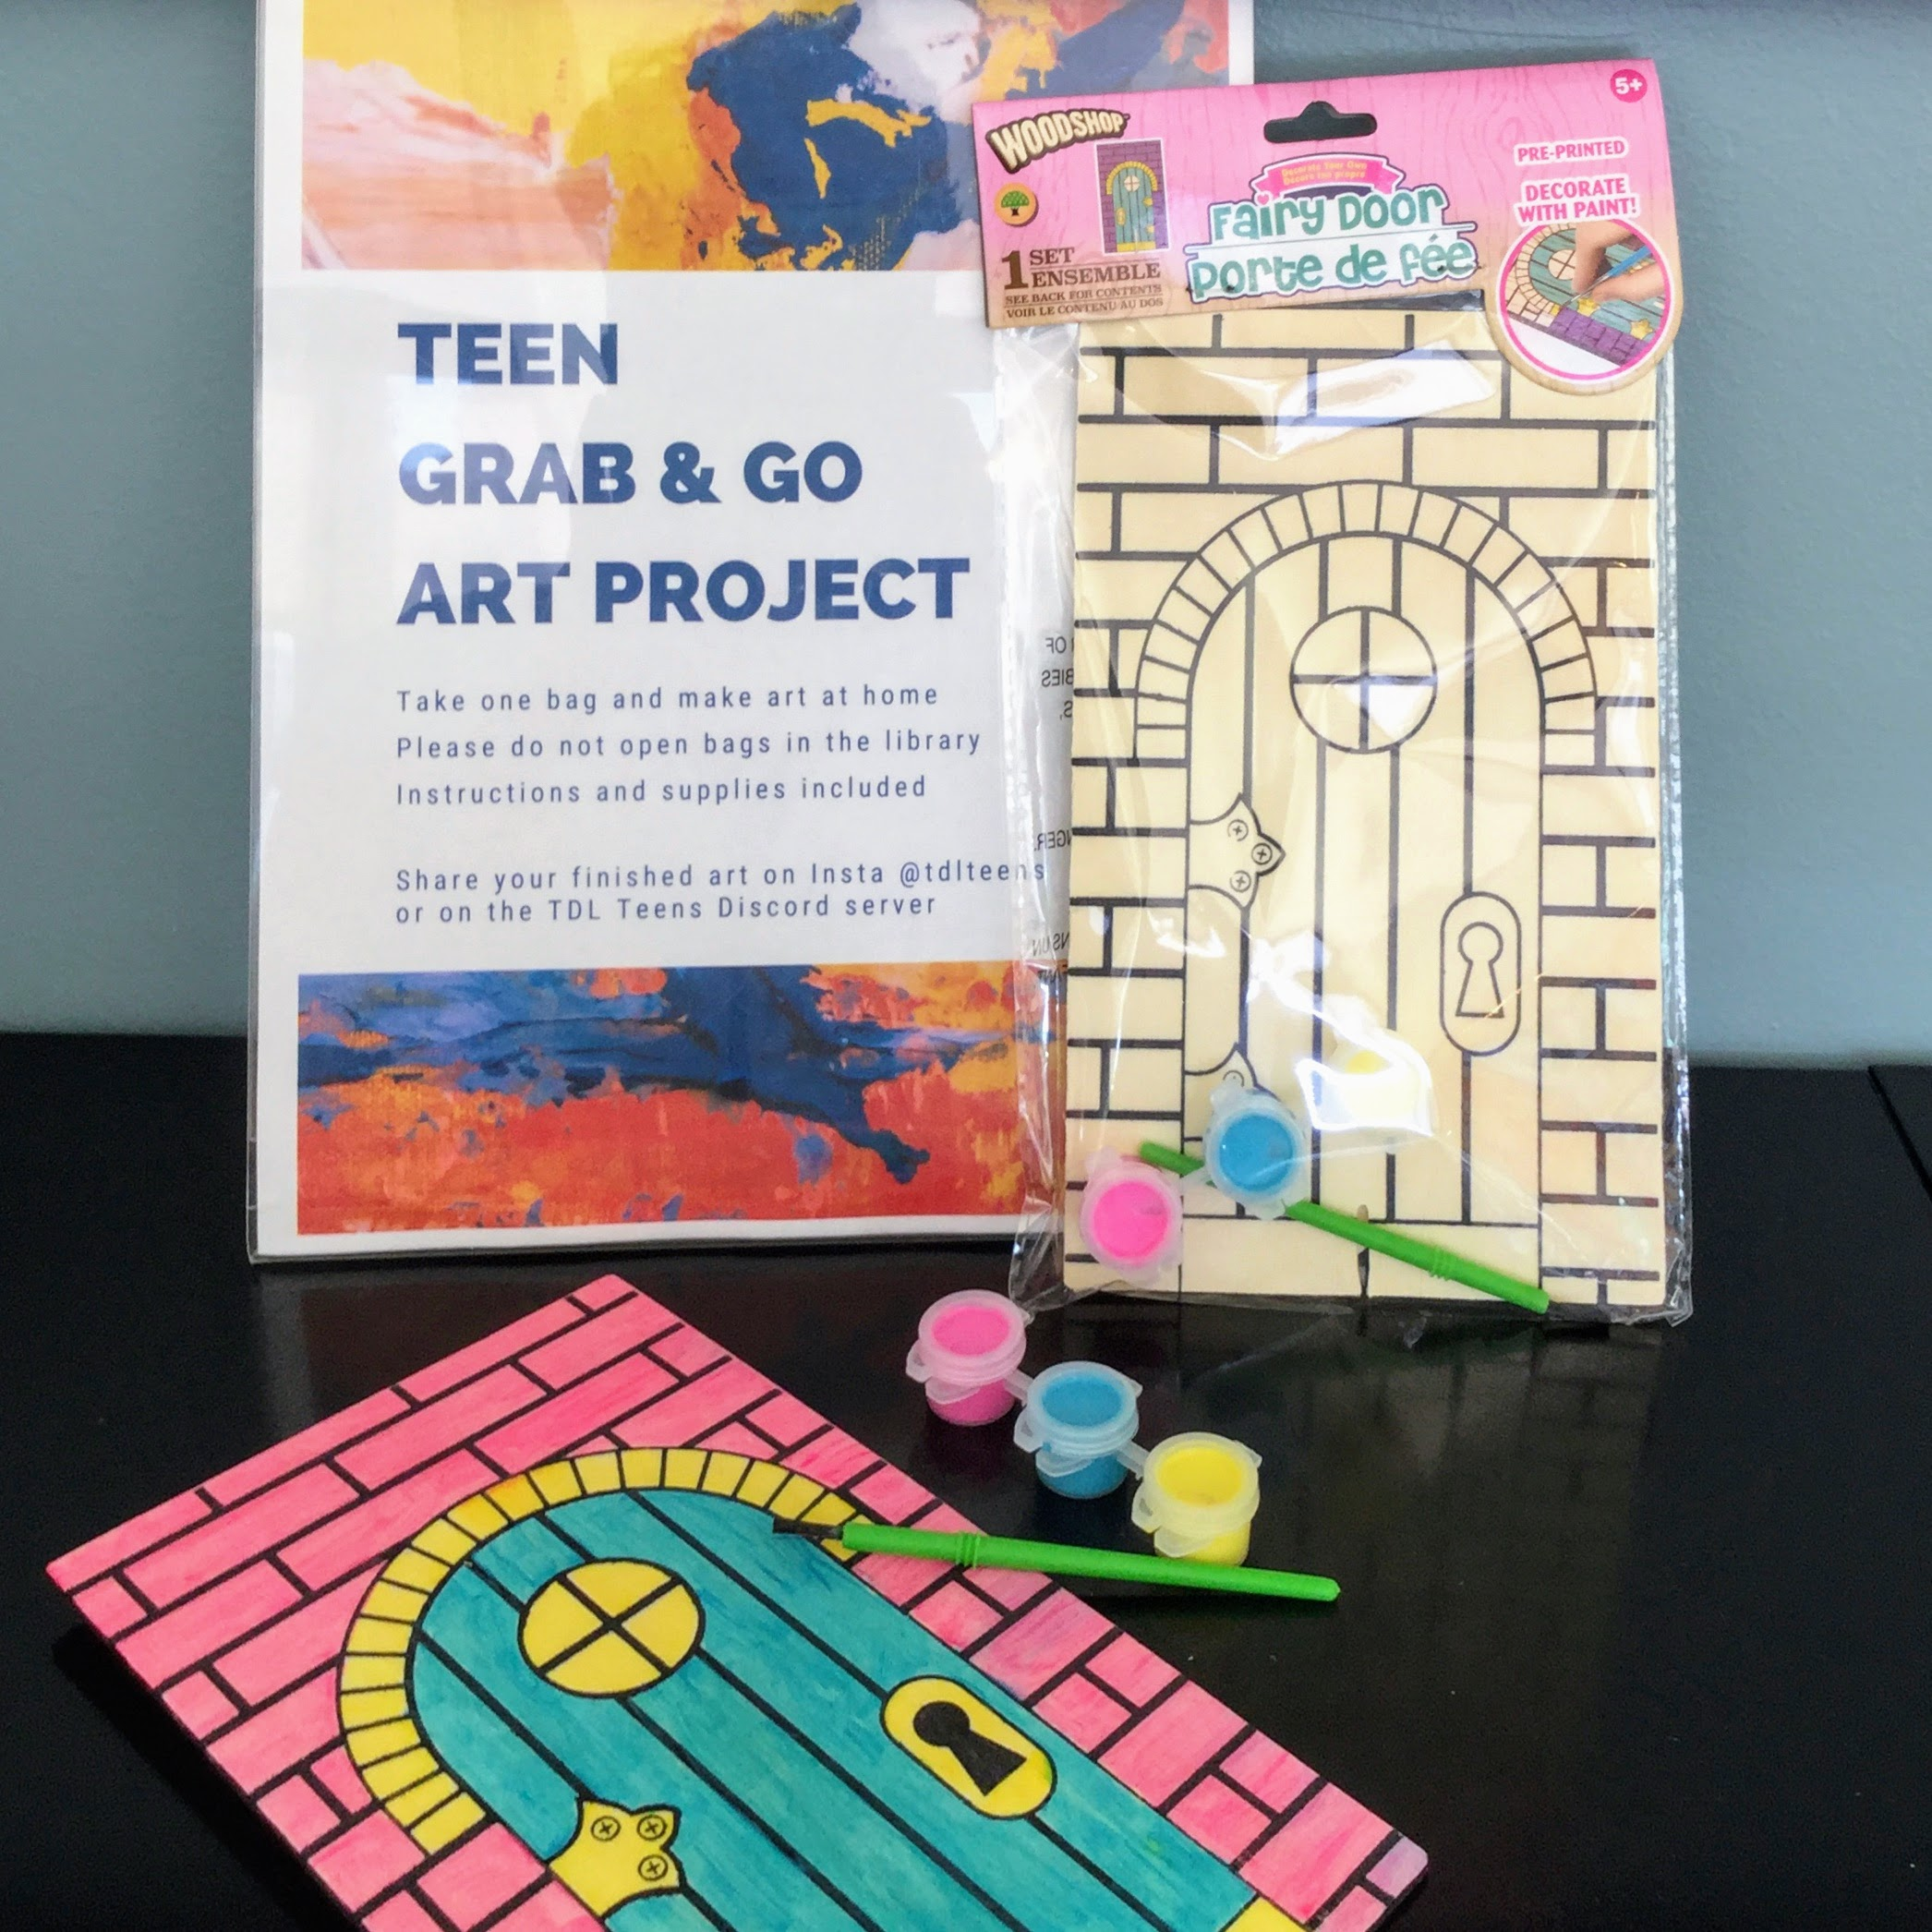 Photo of a fairy door kit, a painted fairy door, and a sign explaining teen grab & go projects